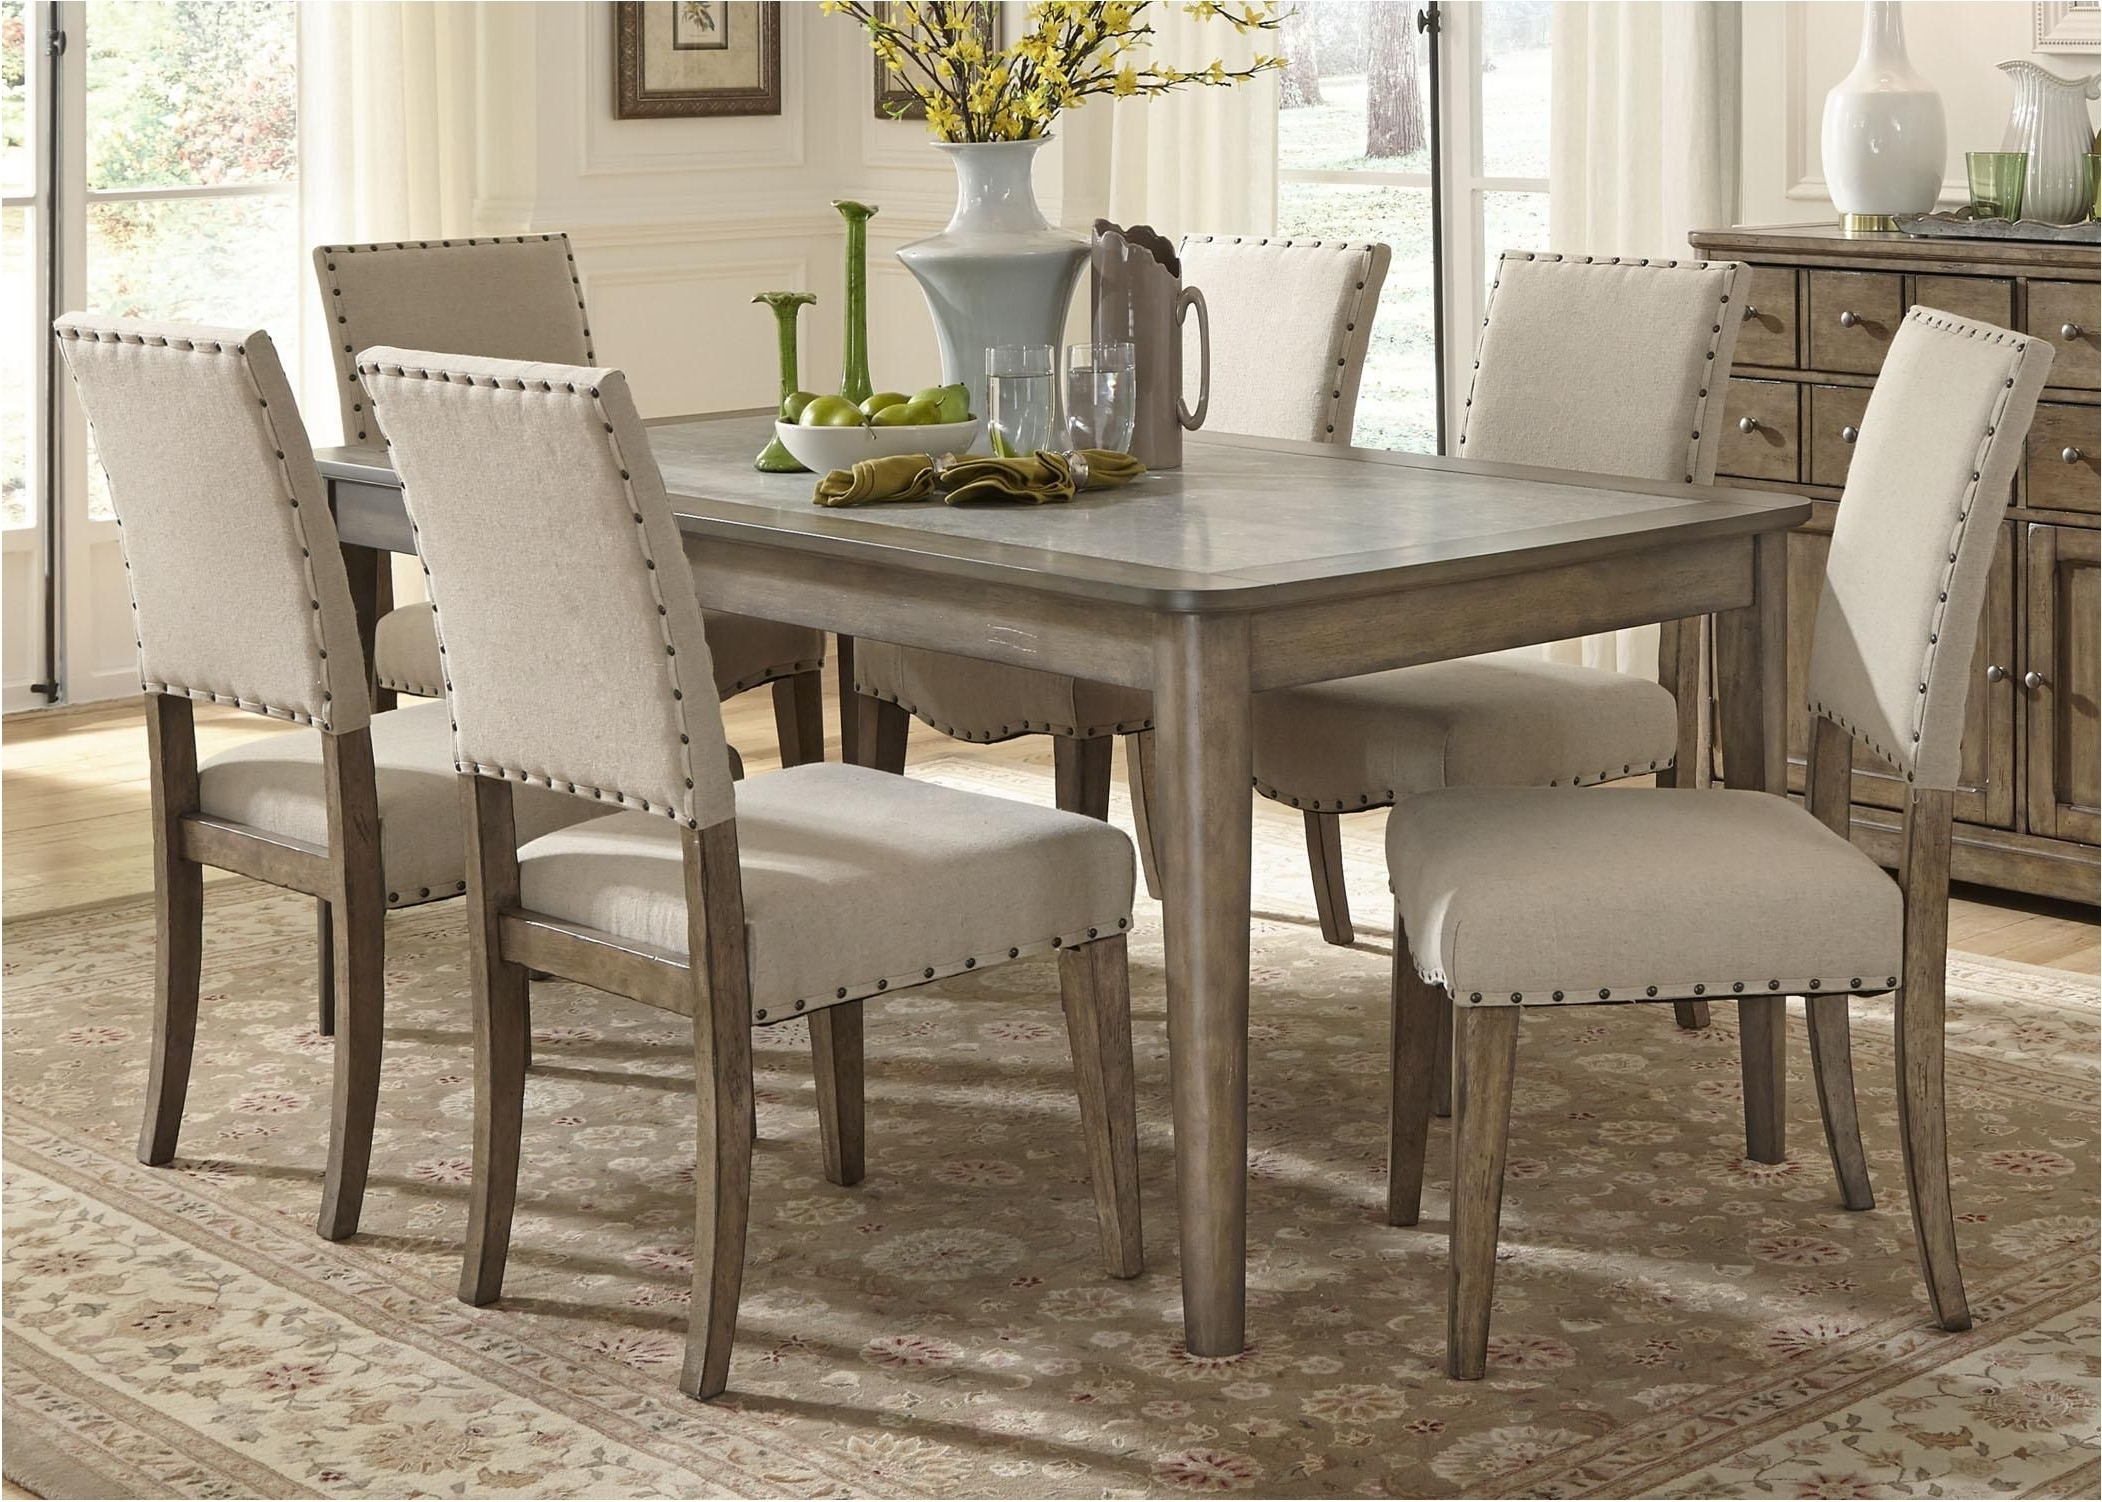 Kitchen Dining Sets Regarding Most Up To Date Lovely New Casual Rustic 7 Piece Dining Table And Chairs Set (View 17 of 25)